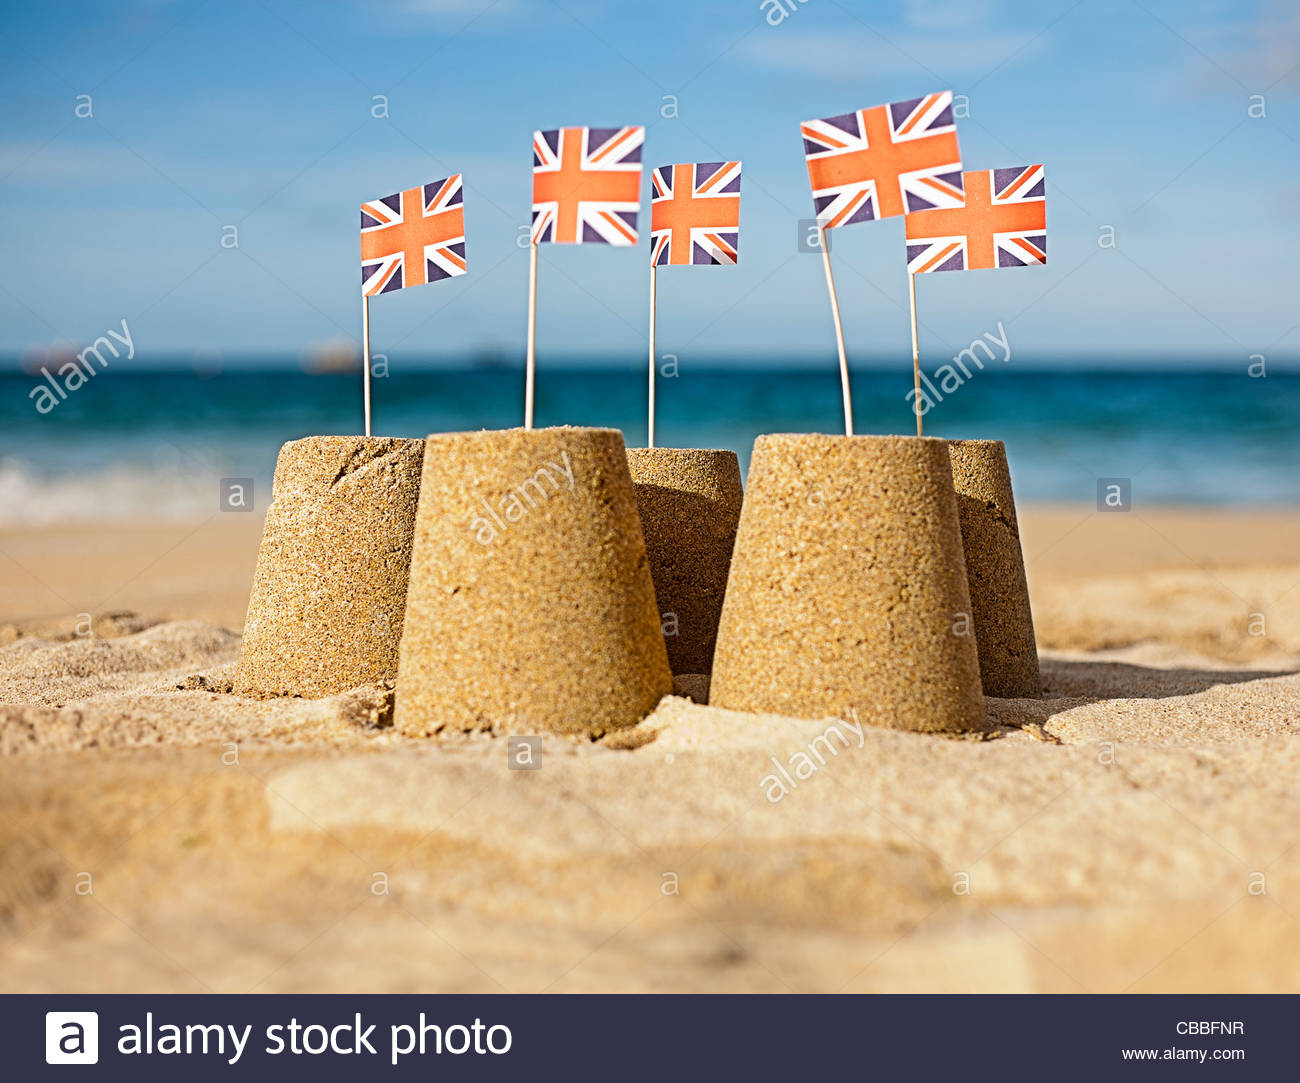 Sandcastles with Union Jack flags - Stock Image